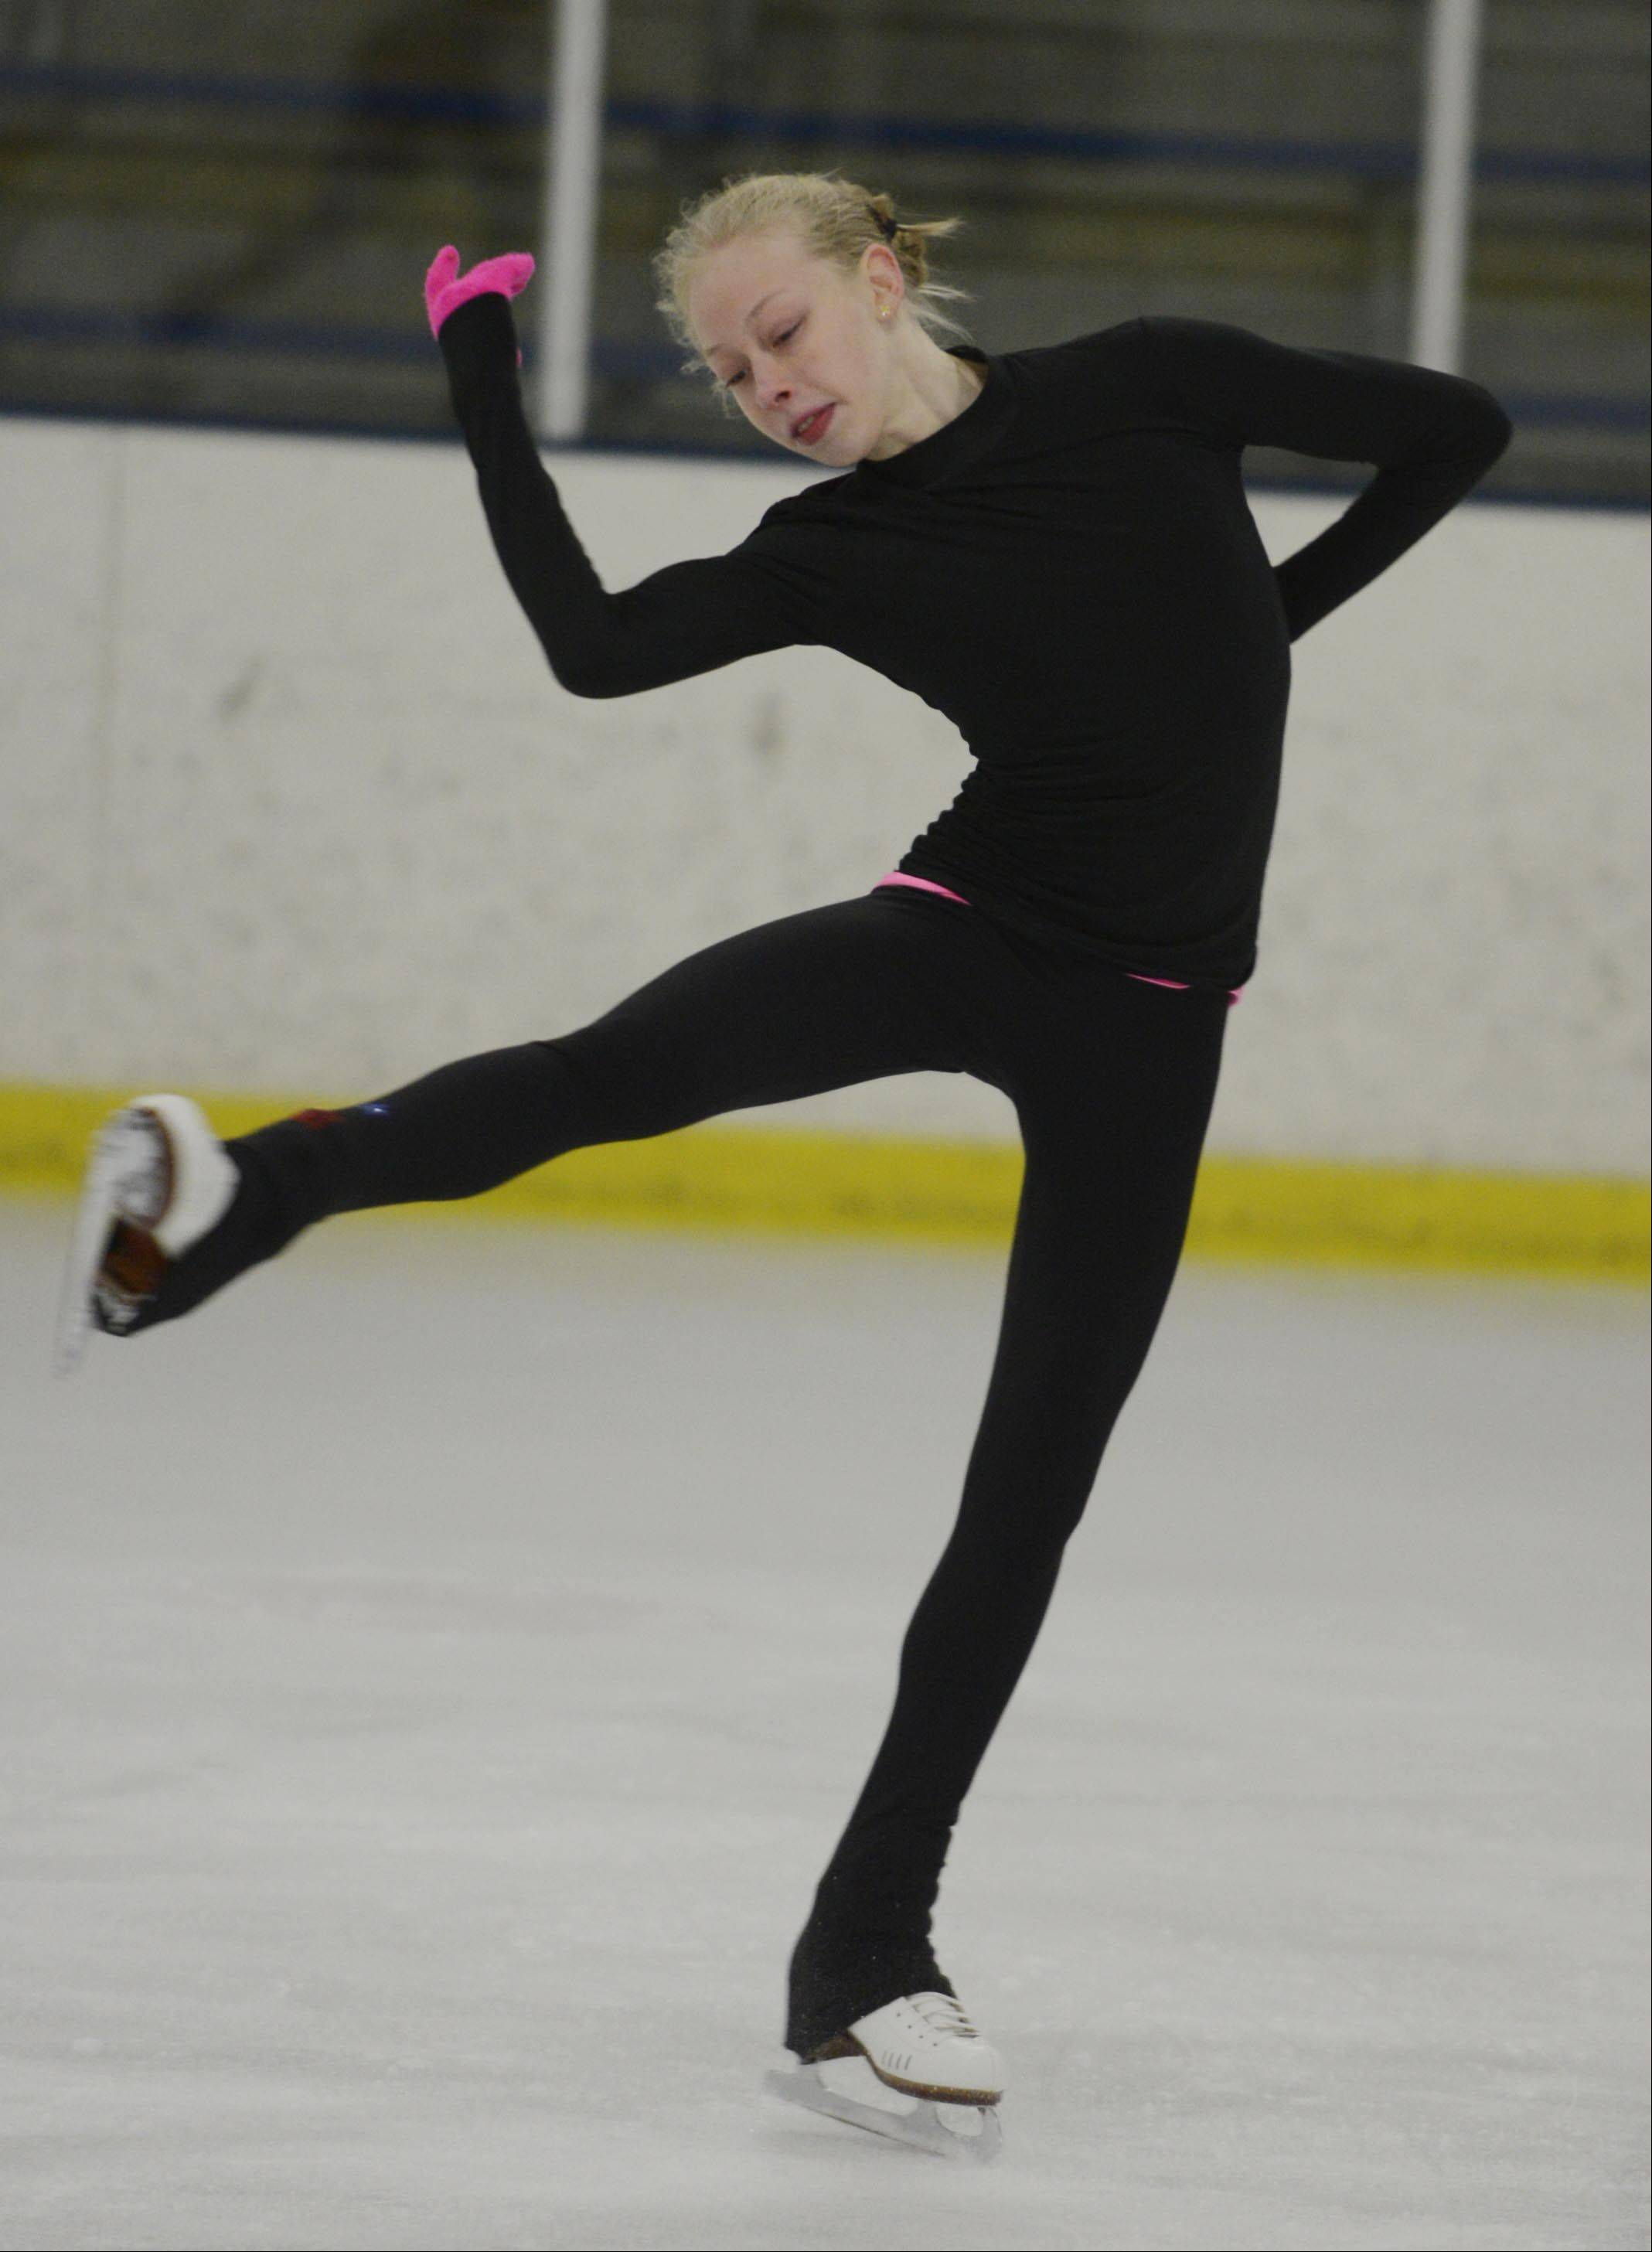 Bradie Tennell of Carpentersville, is moving up in the junior ladies circuit and considers Gracie Gold an inspiration.